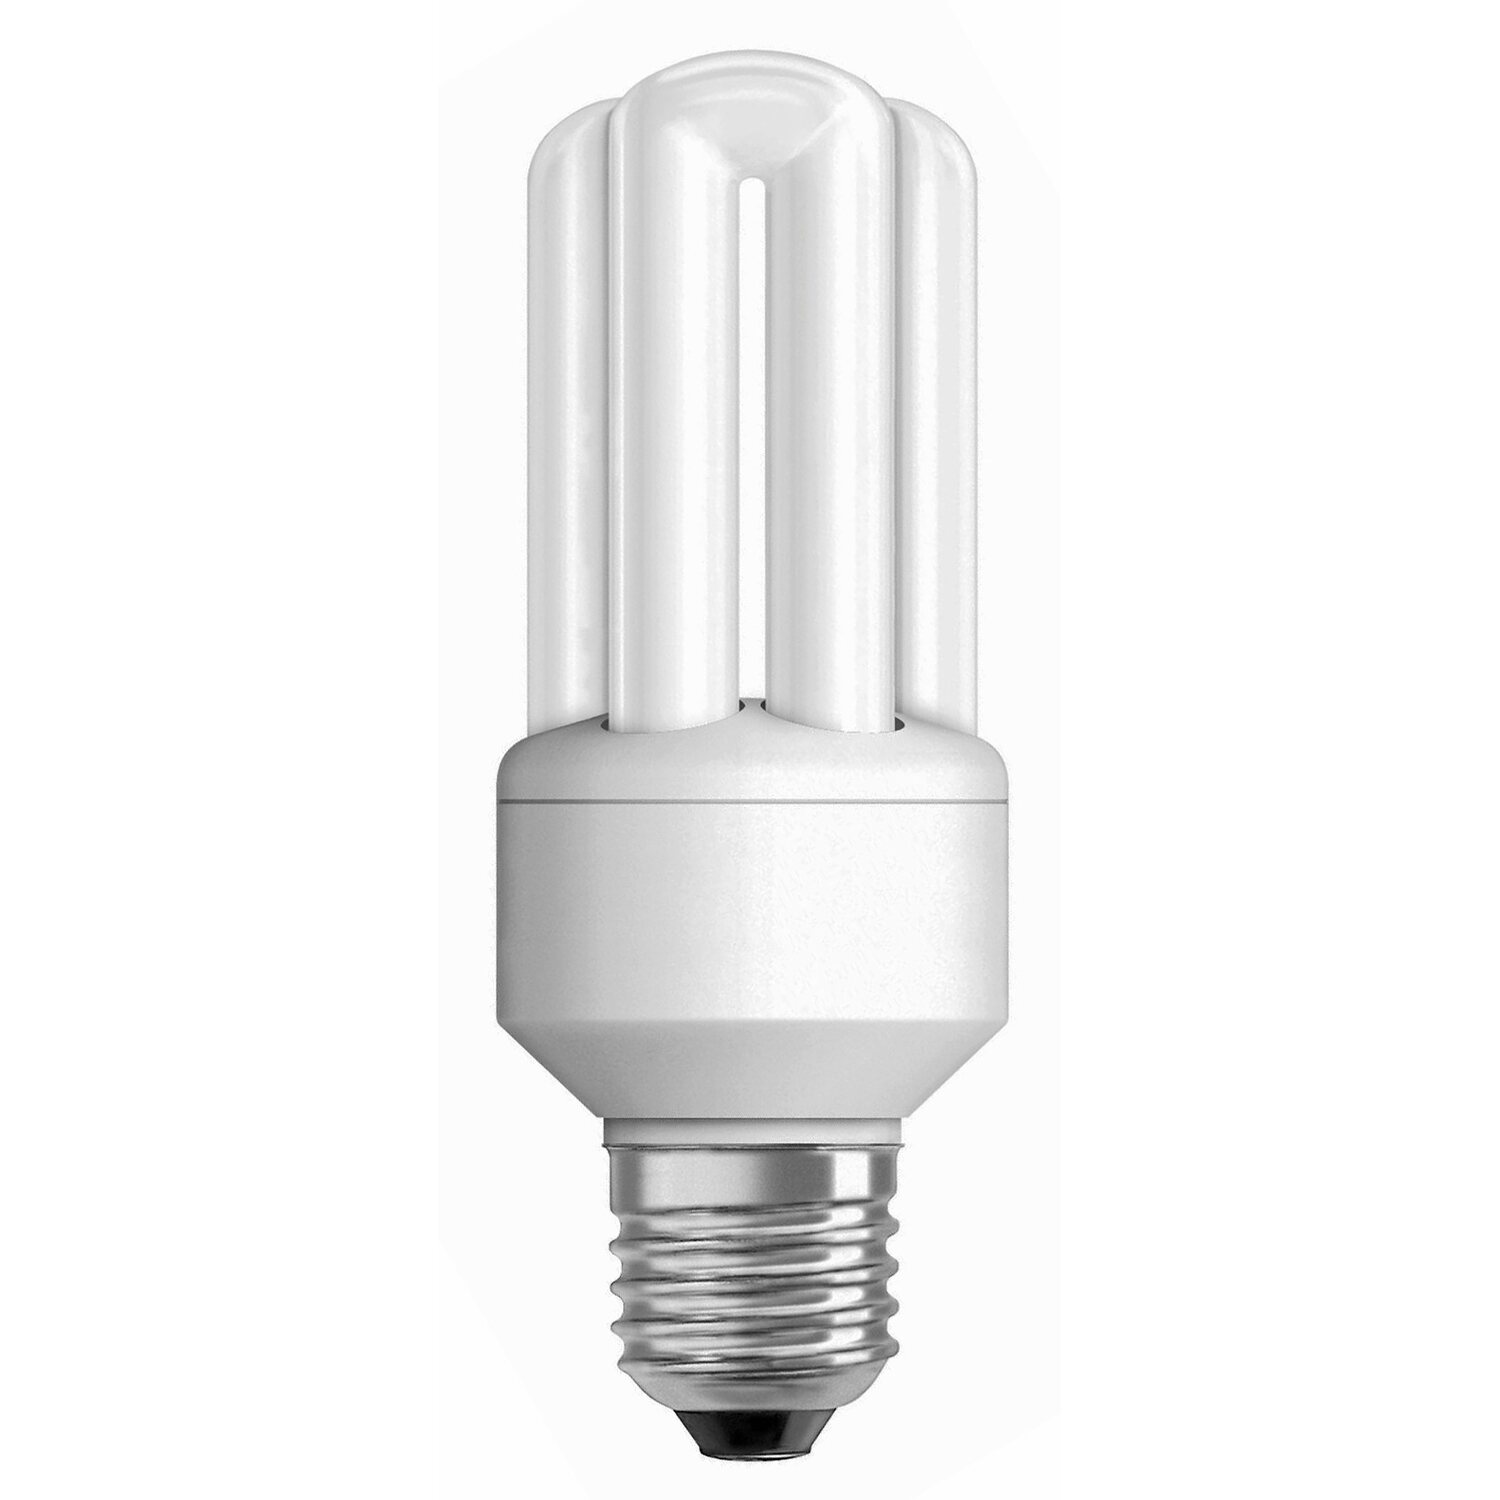 Osram Energiesparlampe Stabform E27 / 11 W (600...